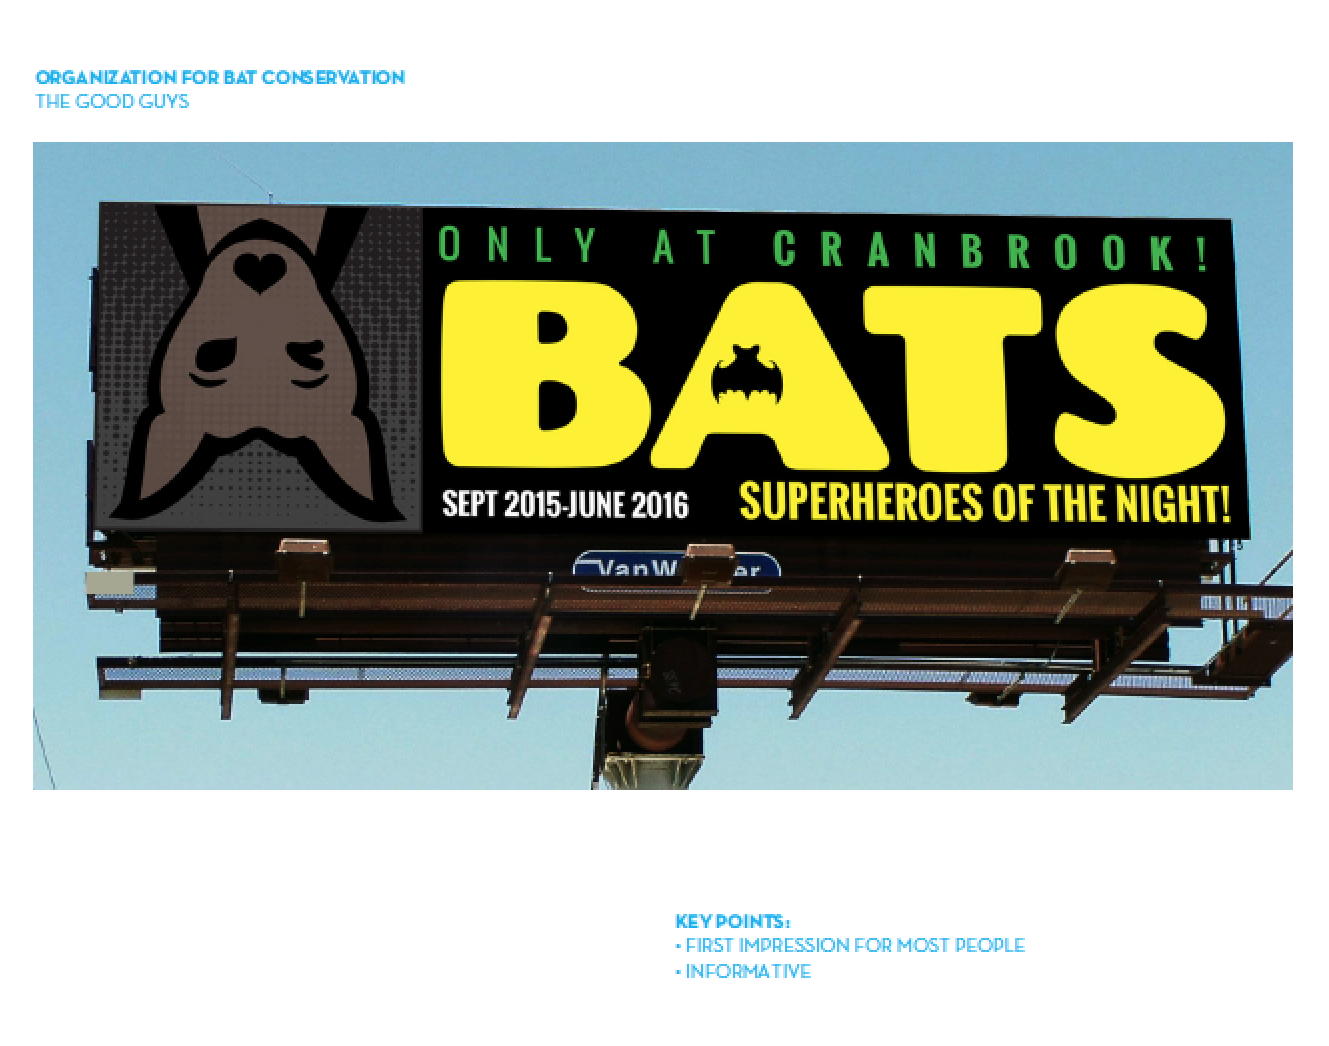 Presentation Proposal Slide Example featuring billboard design for Organization for Bat Conservation's exhibit  BATS: Superheroes of the Night! from student designers Jim Muehlheim, Lana Karim, and Kevin Mendez.